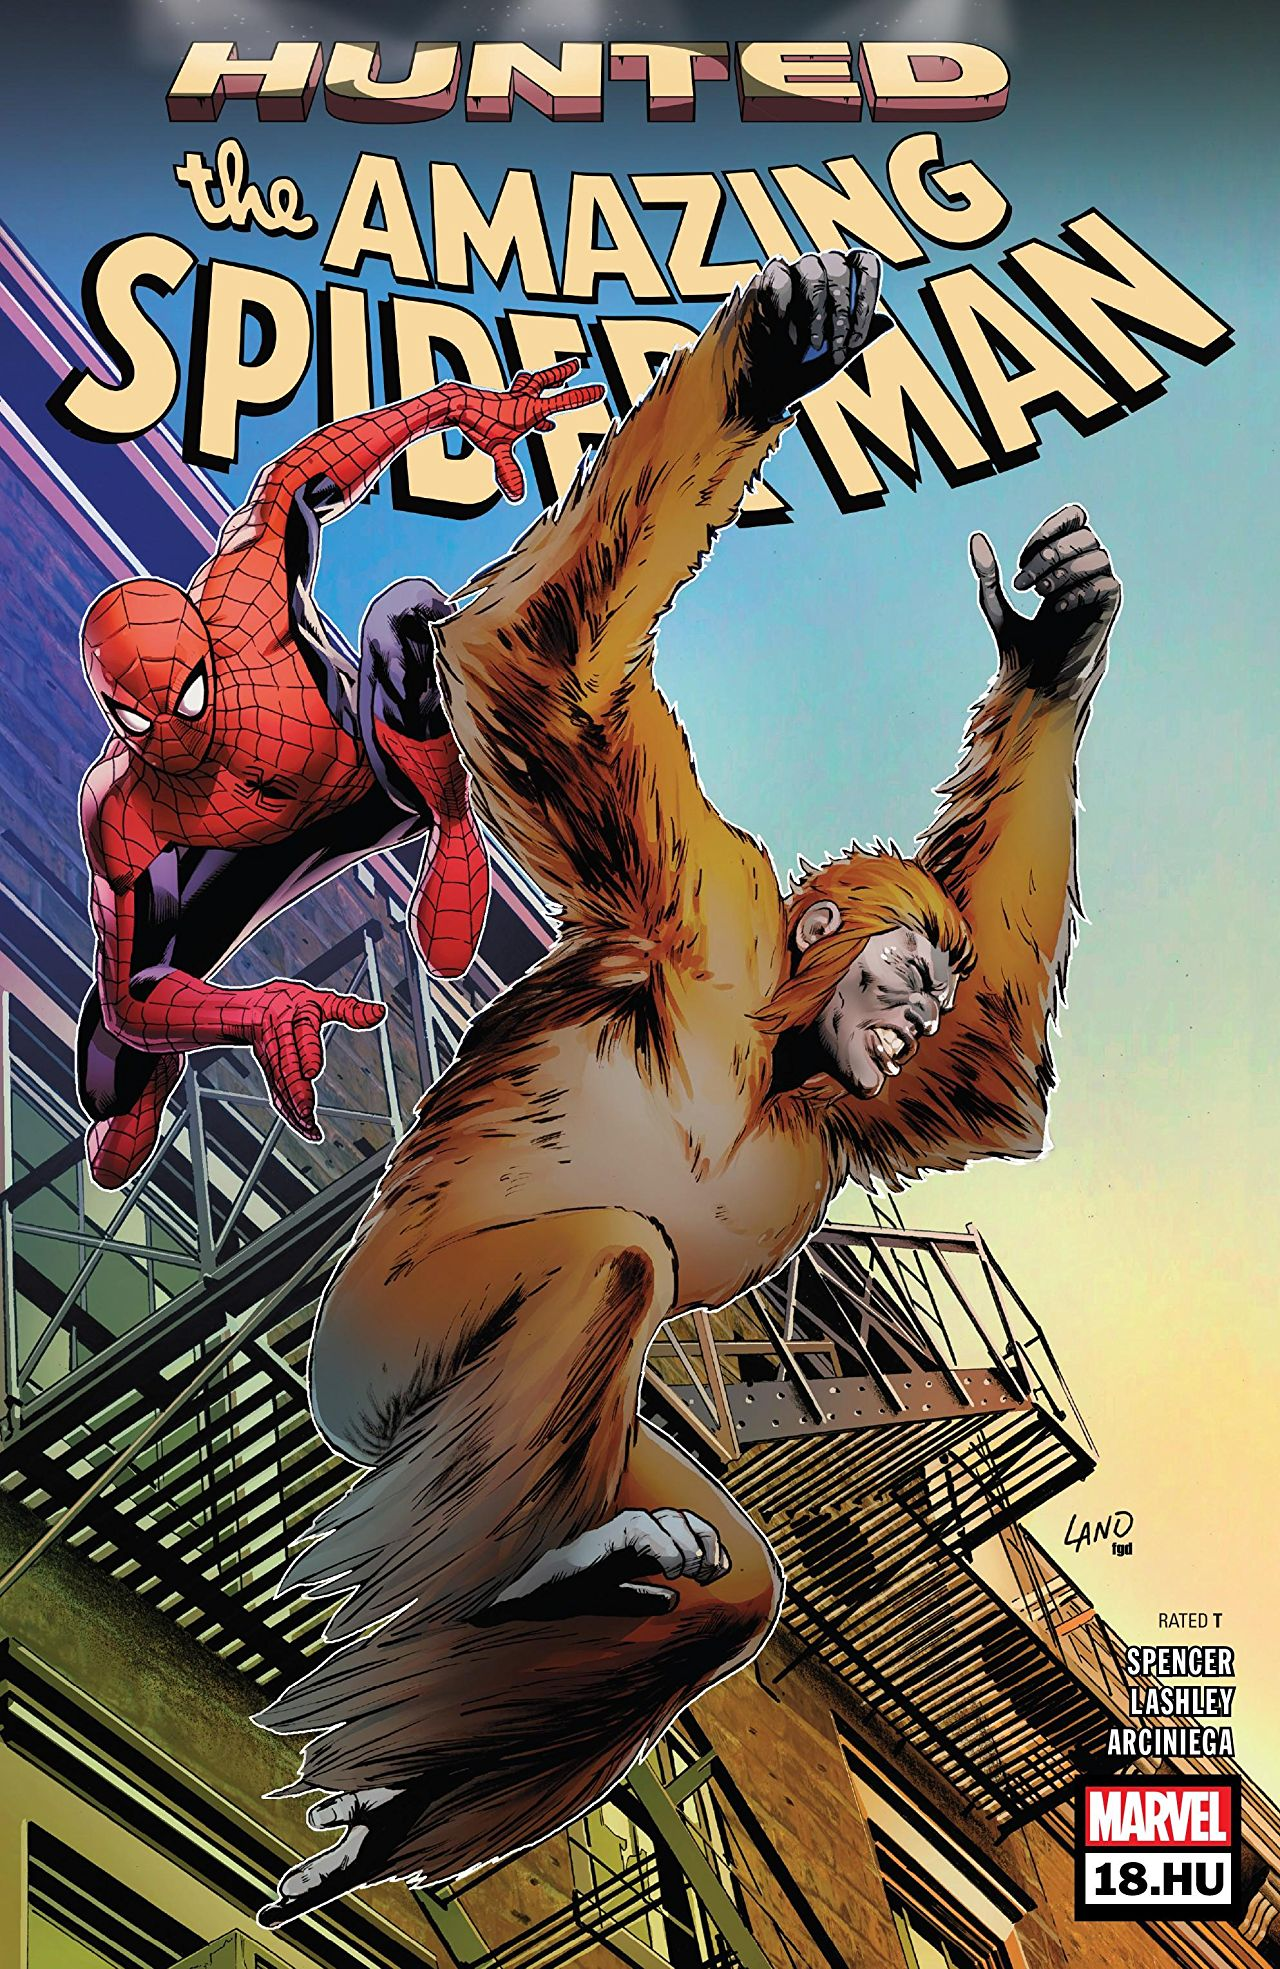 Marvel Preview: Amazing Spider-Man #18.HU